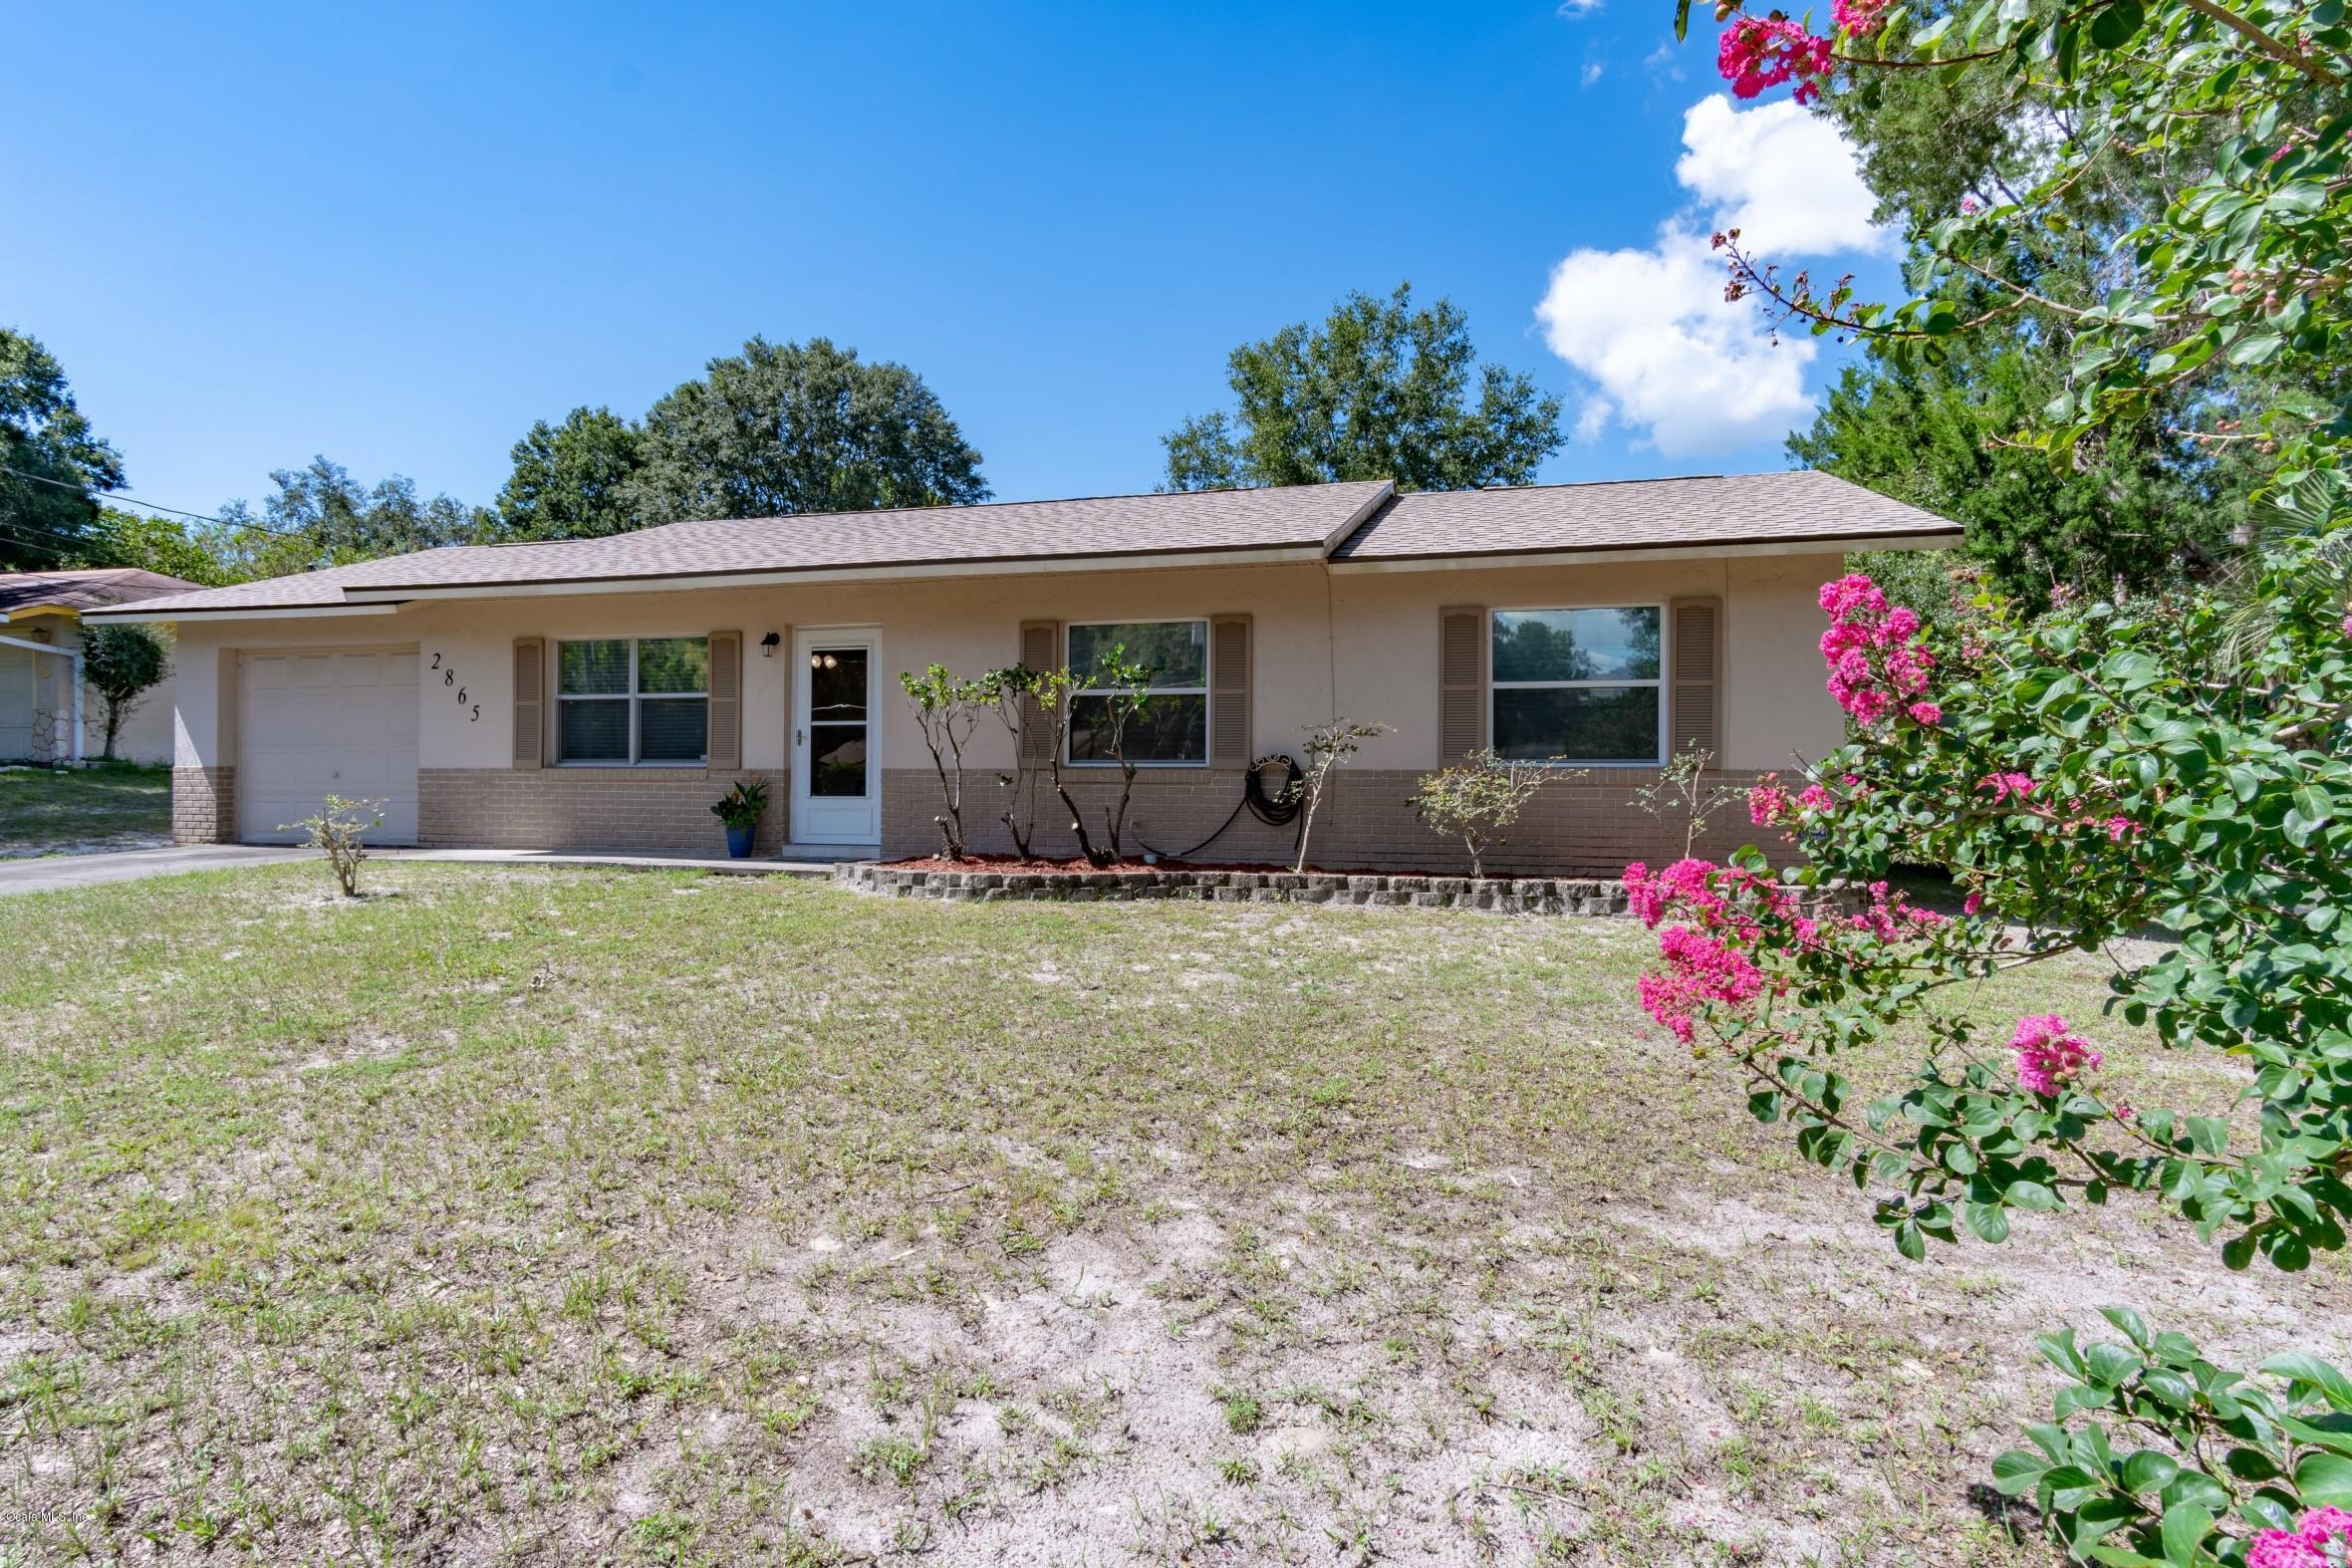 2865 NE 42ND PLACE, OCALA, FL 34479